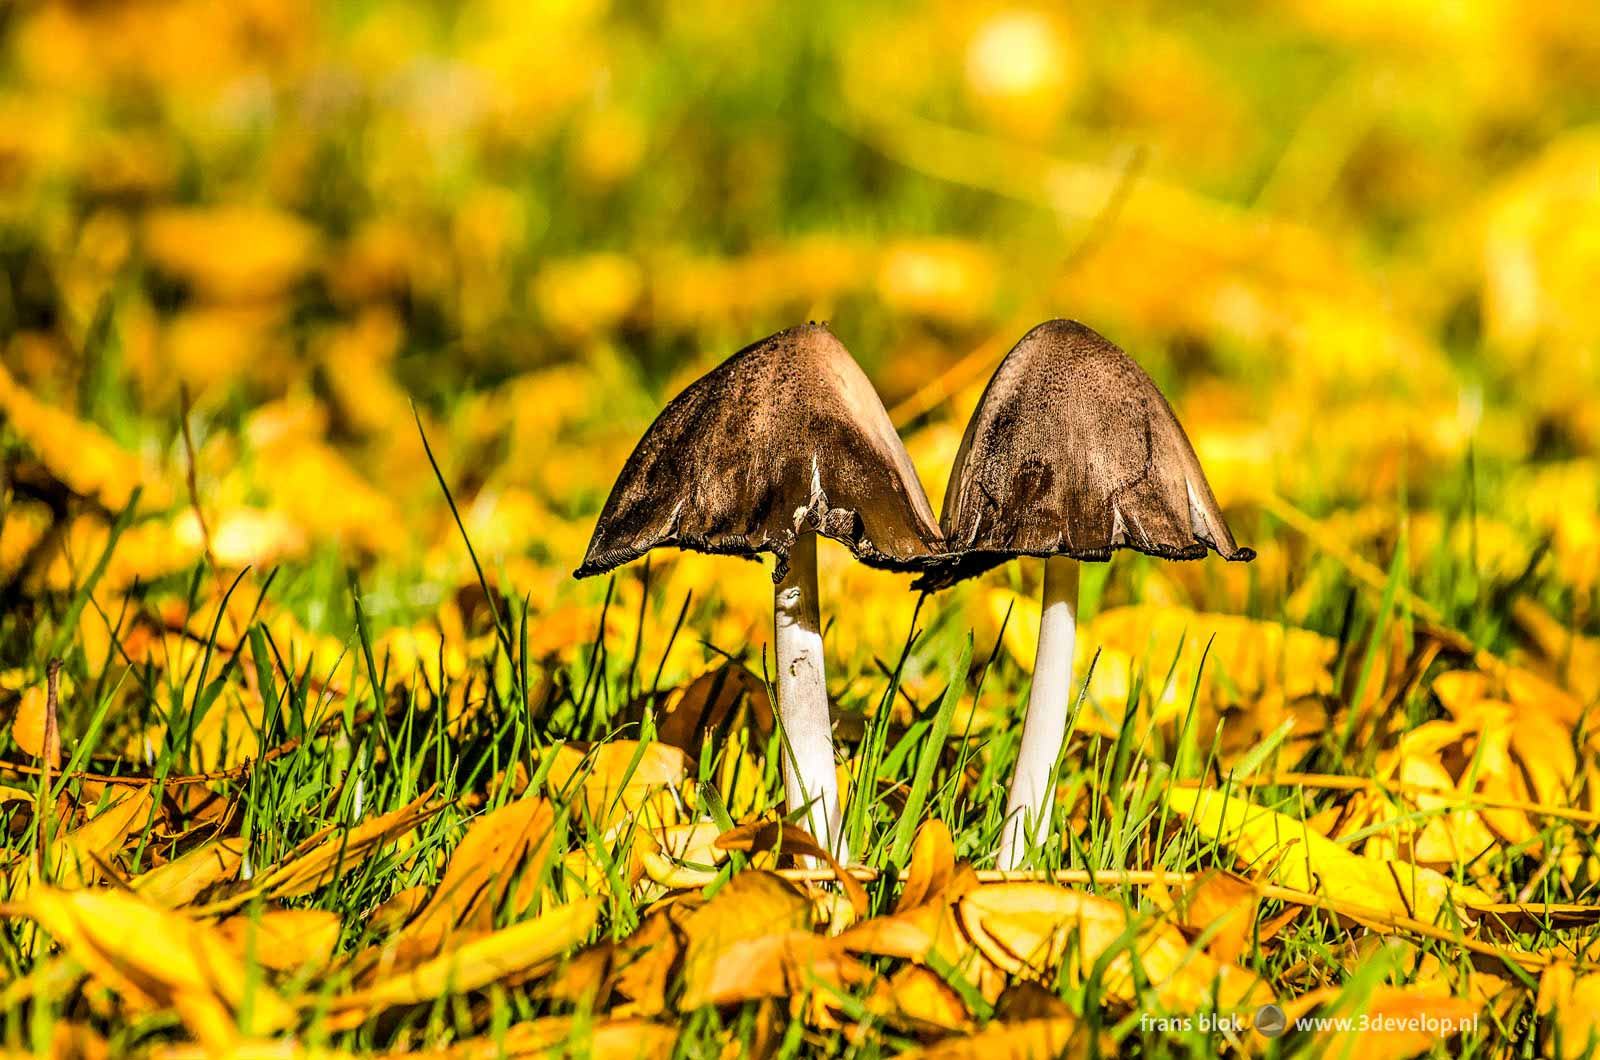 Two mushrooms between fallen leaves on a lawn in autumn